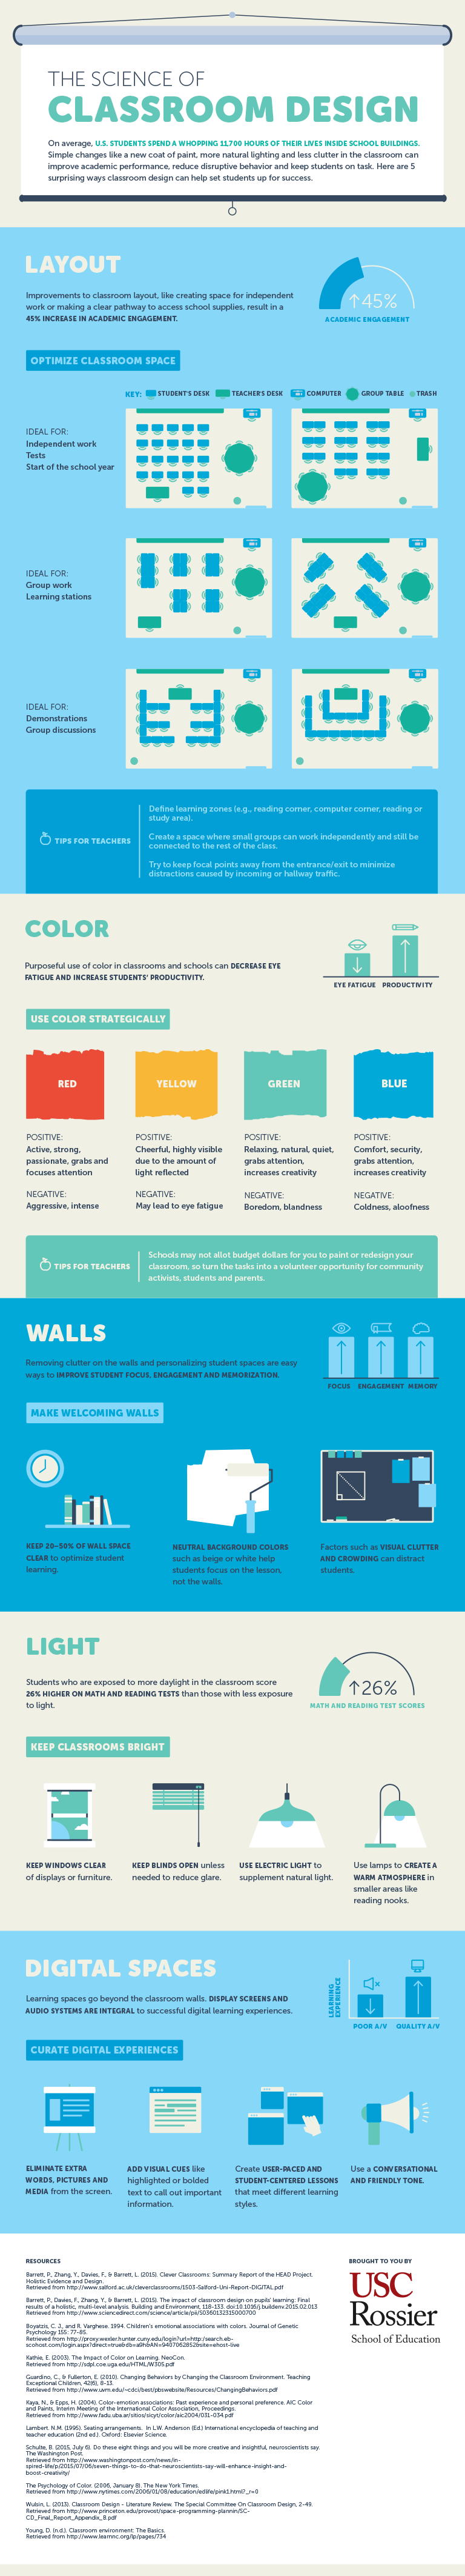 The Science of Classroom Design Infographic